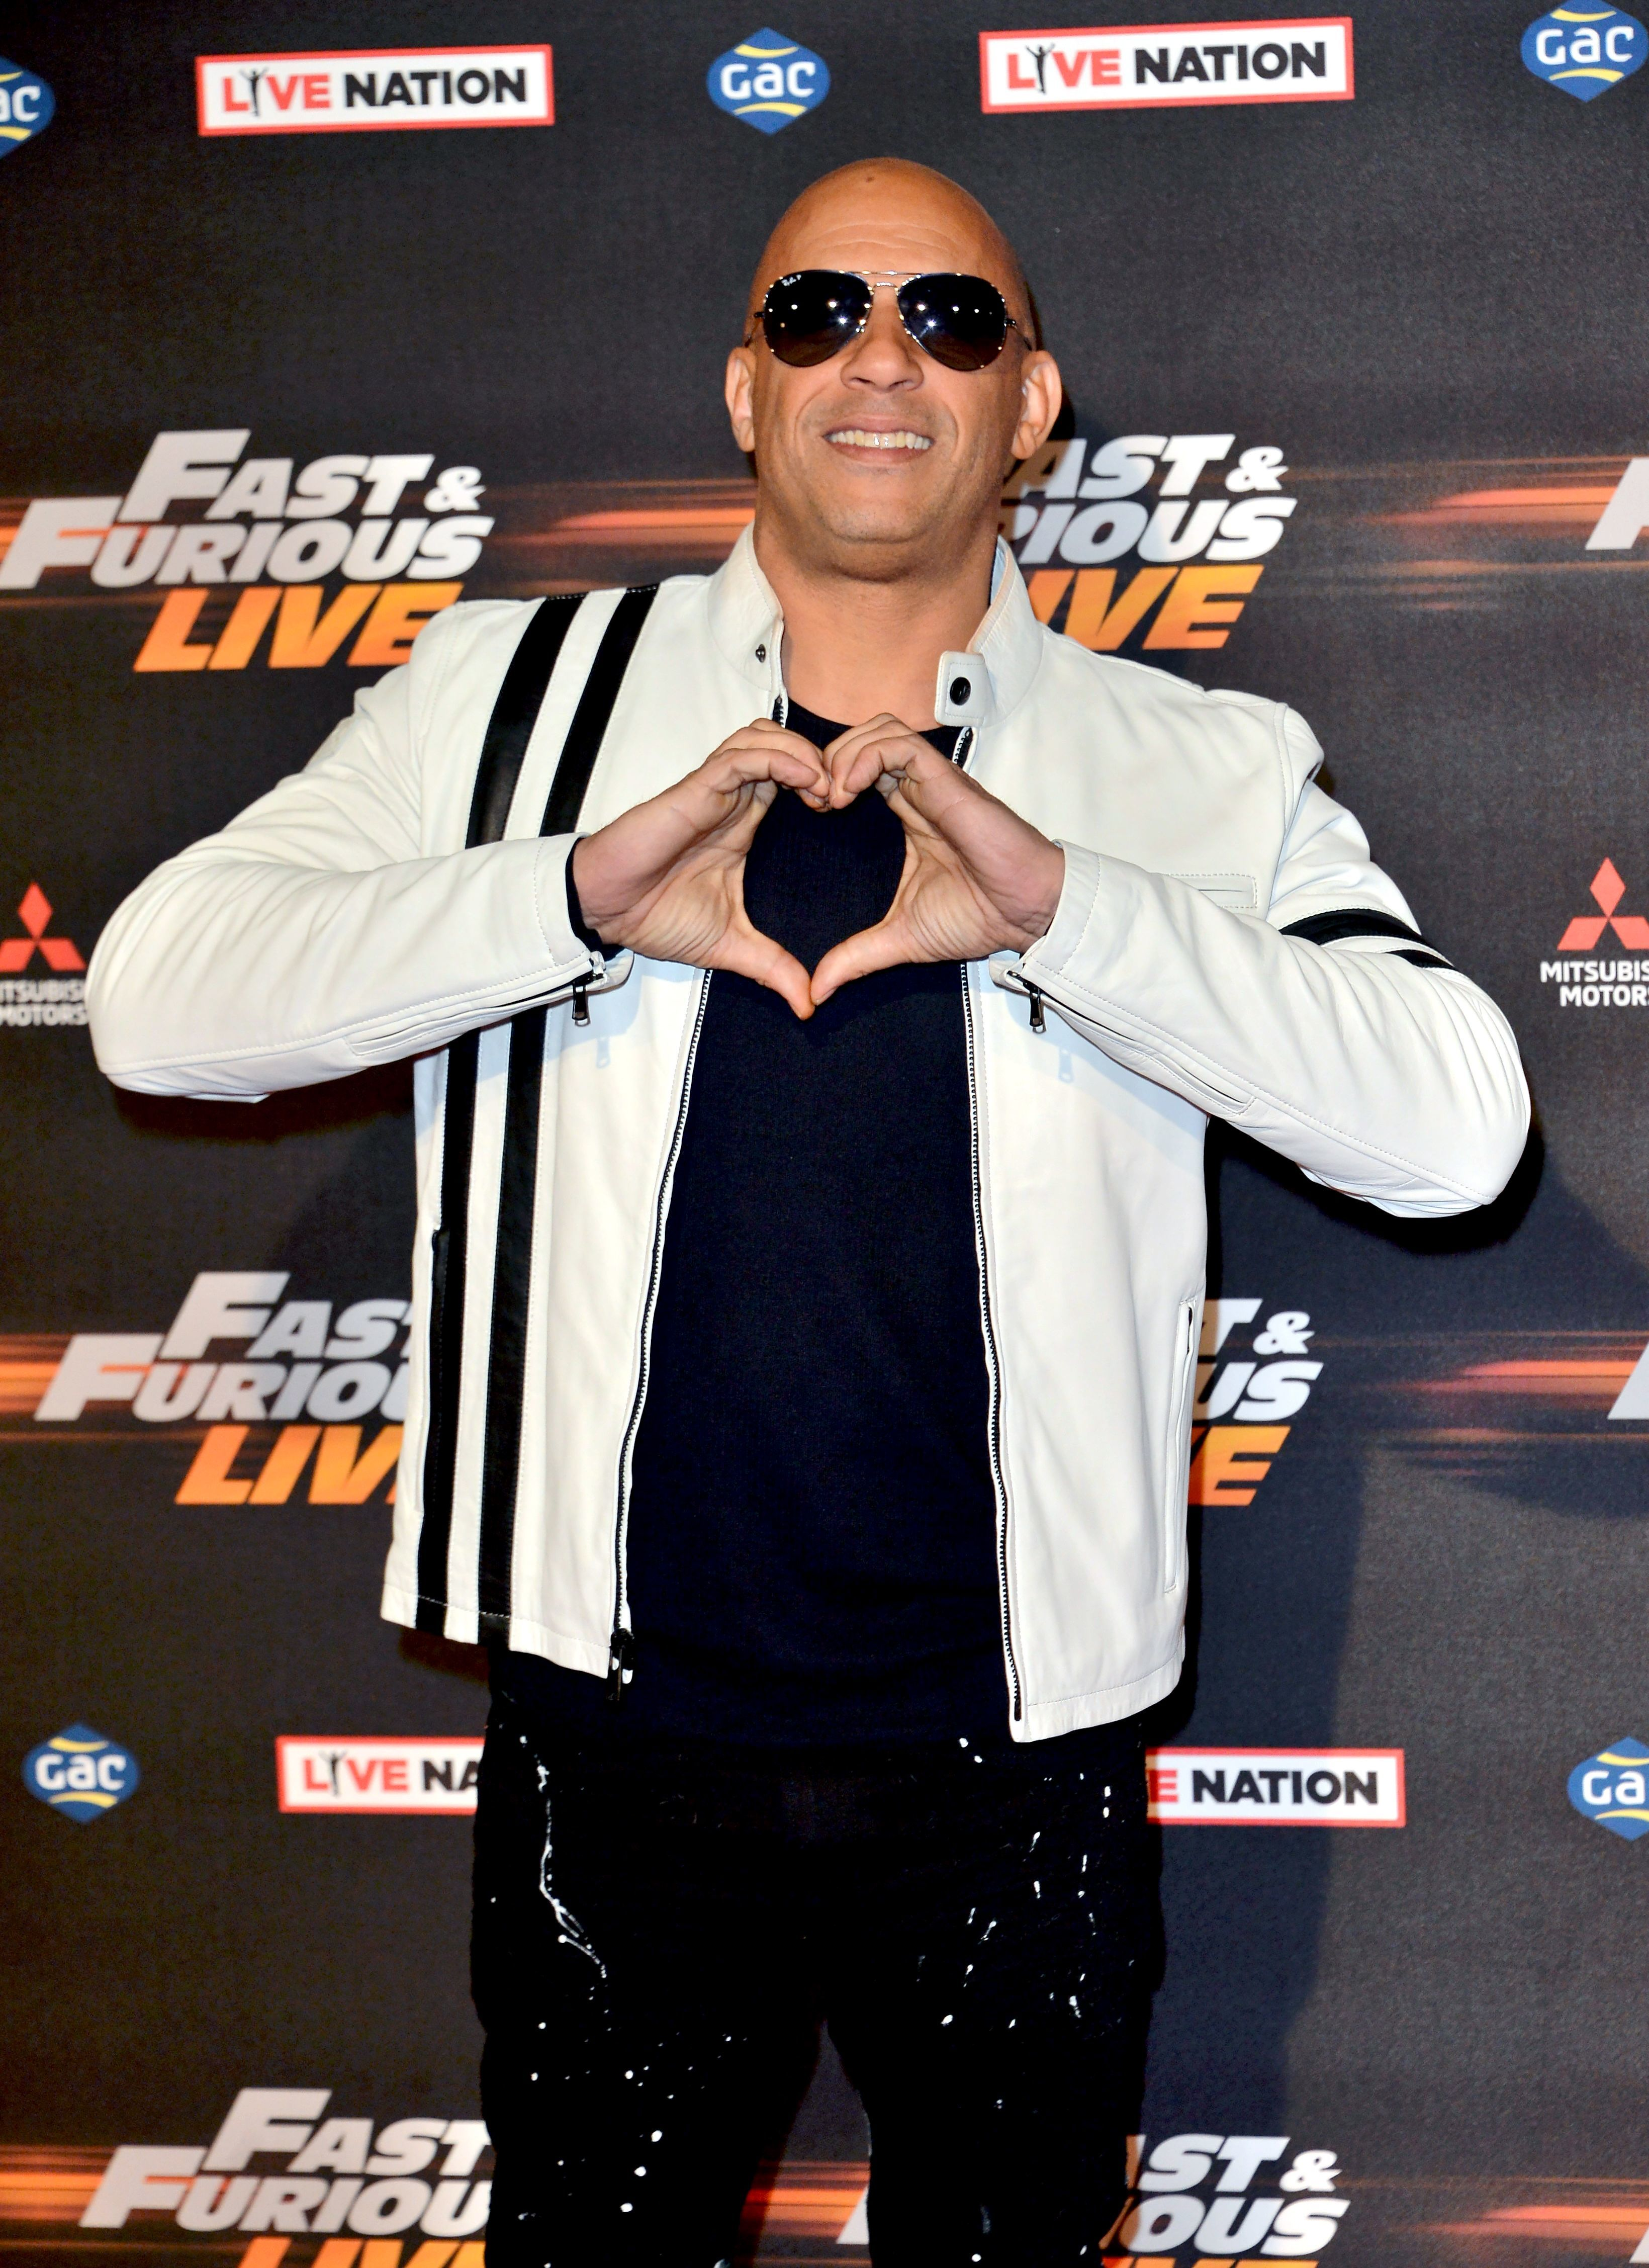 """Vin Diesel attends the """"Fast and Furious Live"""" at the O2 Arena in London on Jan. 19, 2018."""